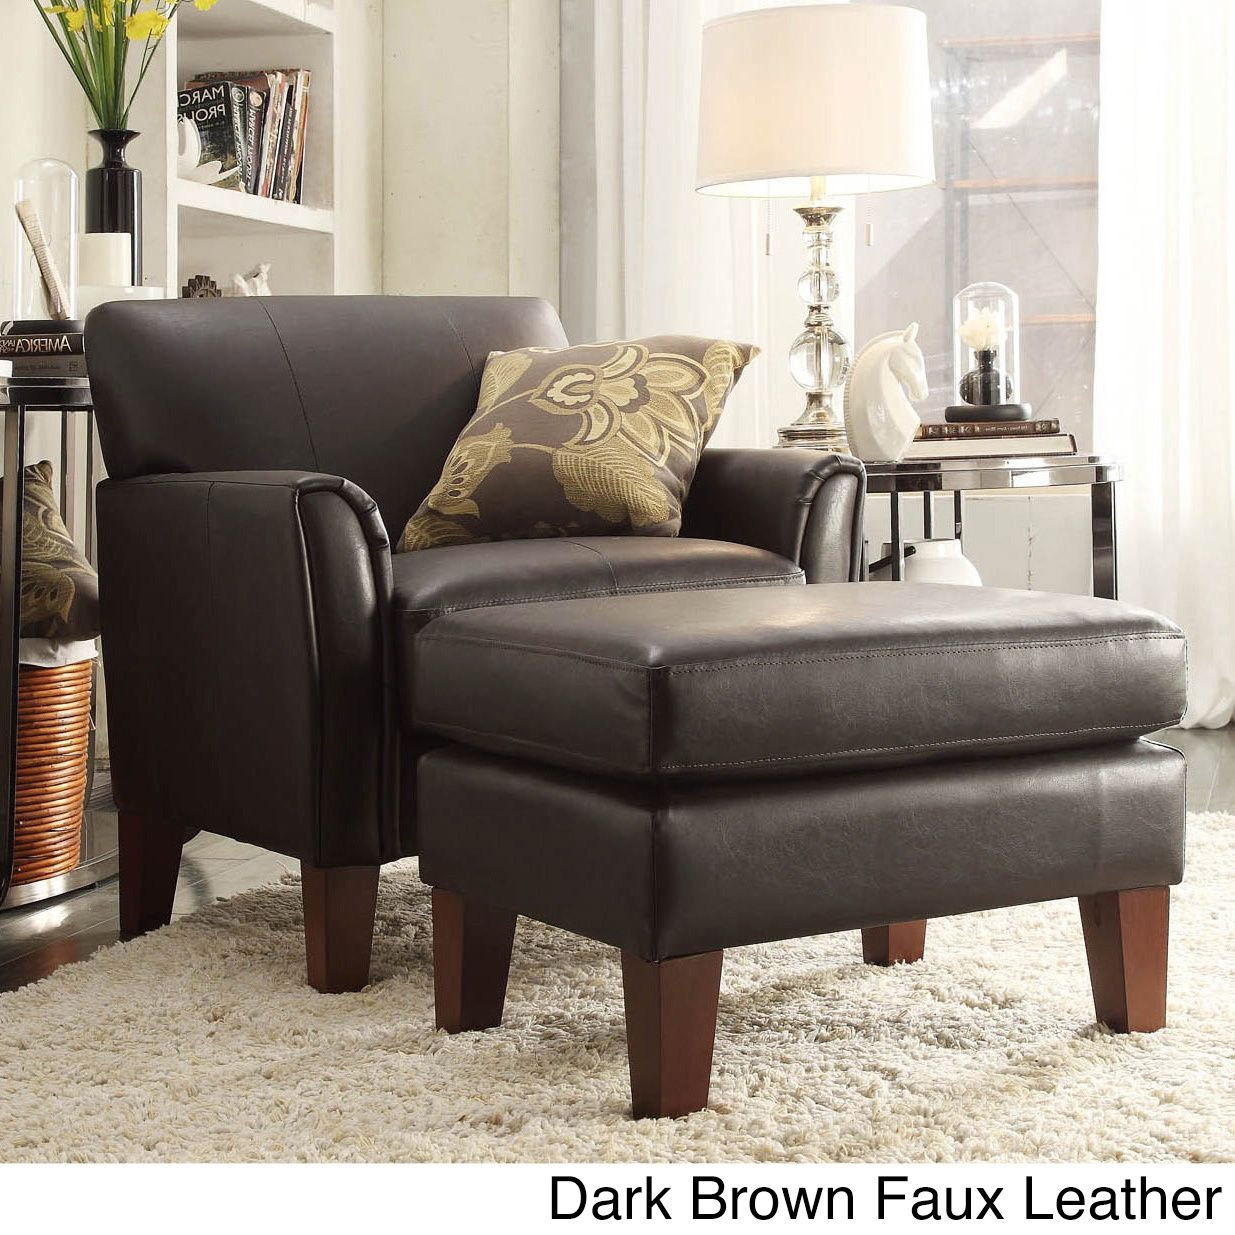 Uptown Modern Accent Chair And Ottoman By Inspire Q